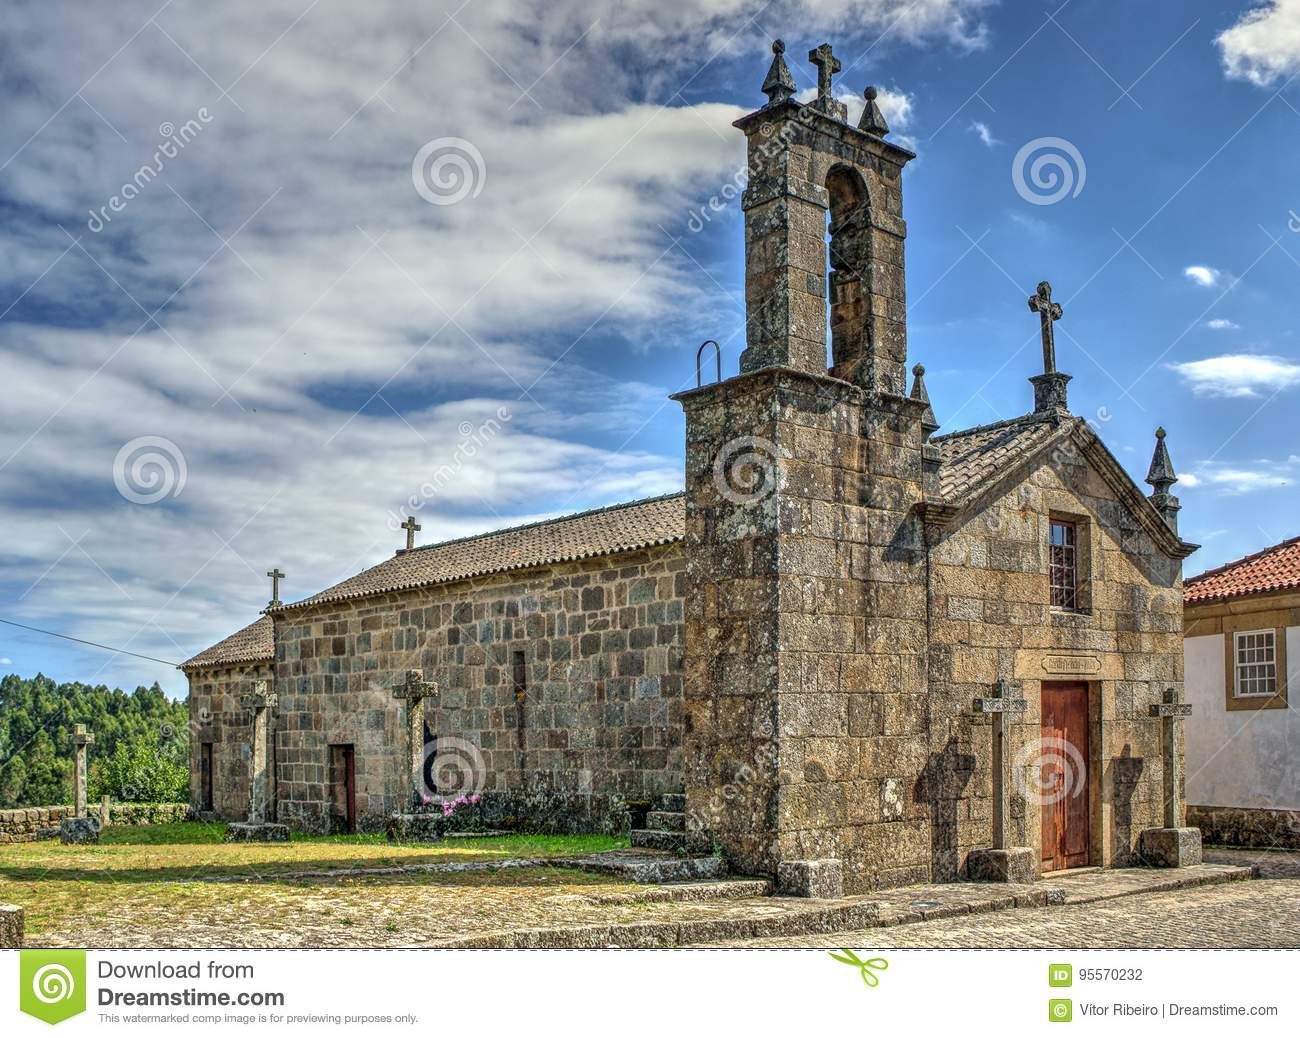 Old church of Sanfins de Ferreira